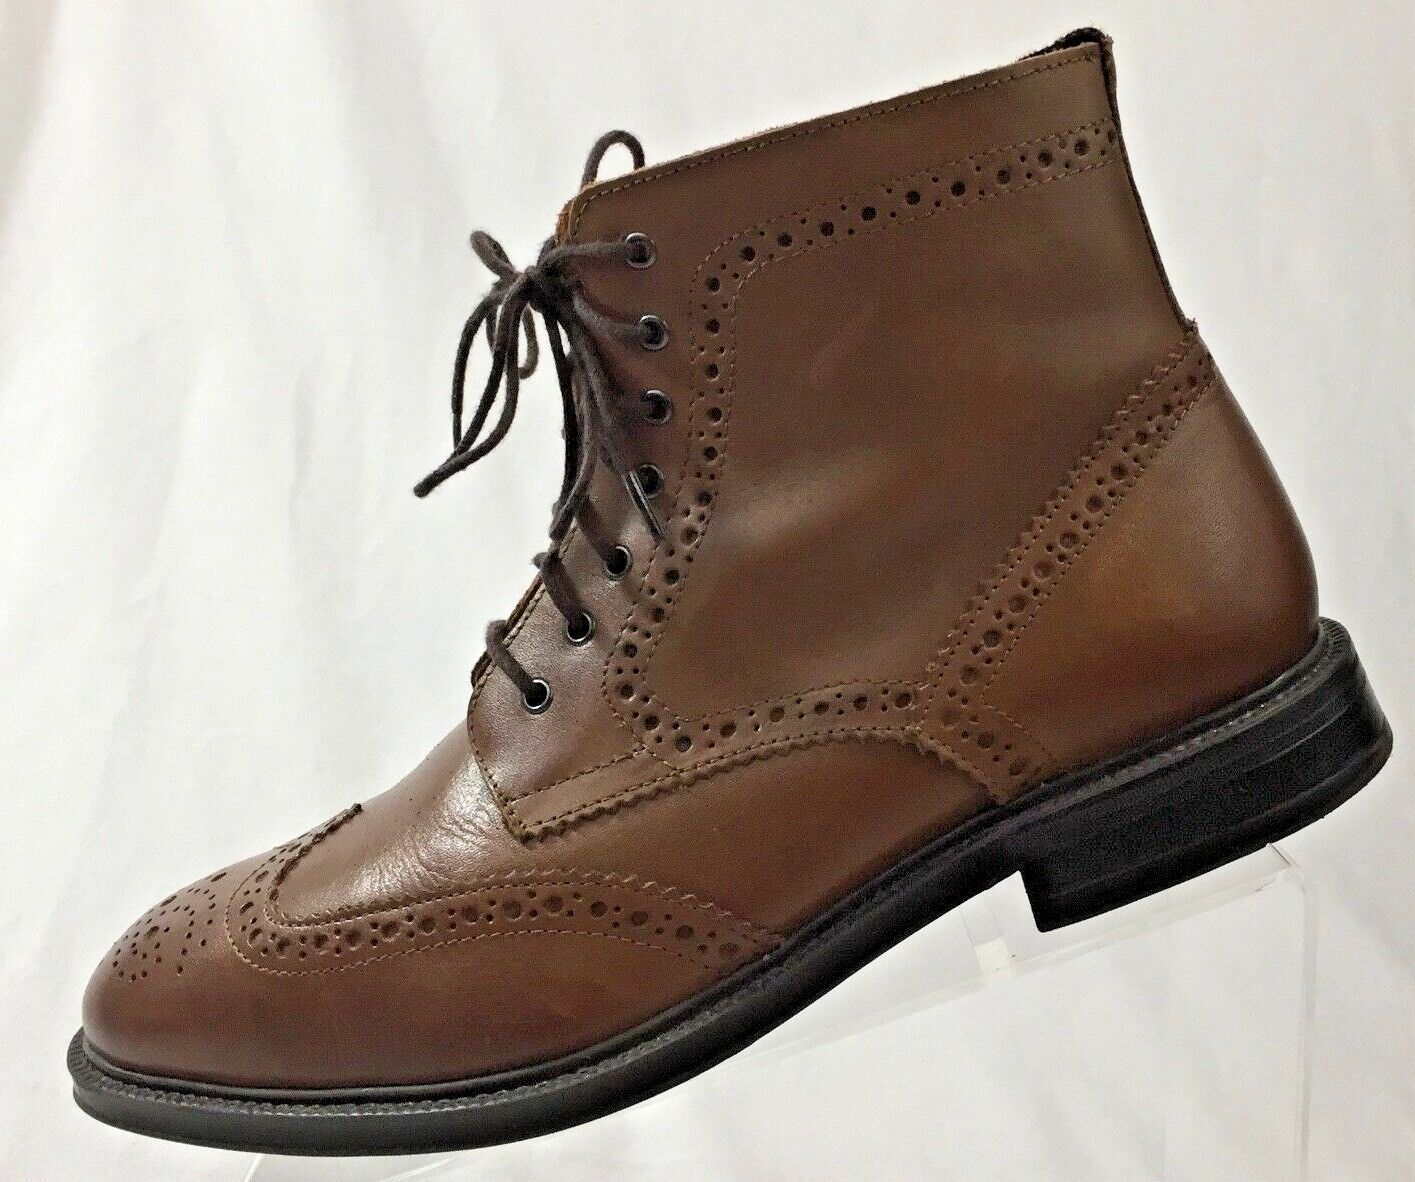 Stafford Men's Brown Leather Wingtip Dress Boots shoes Size 8M